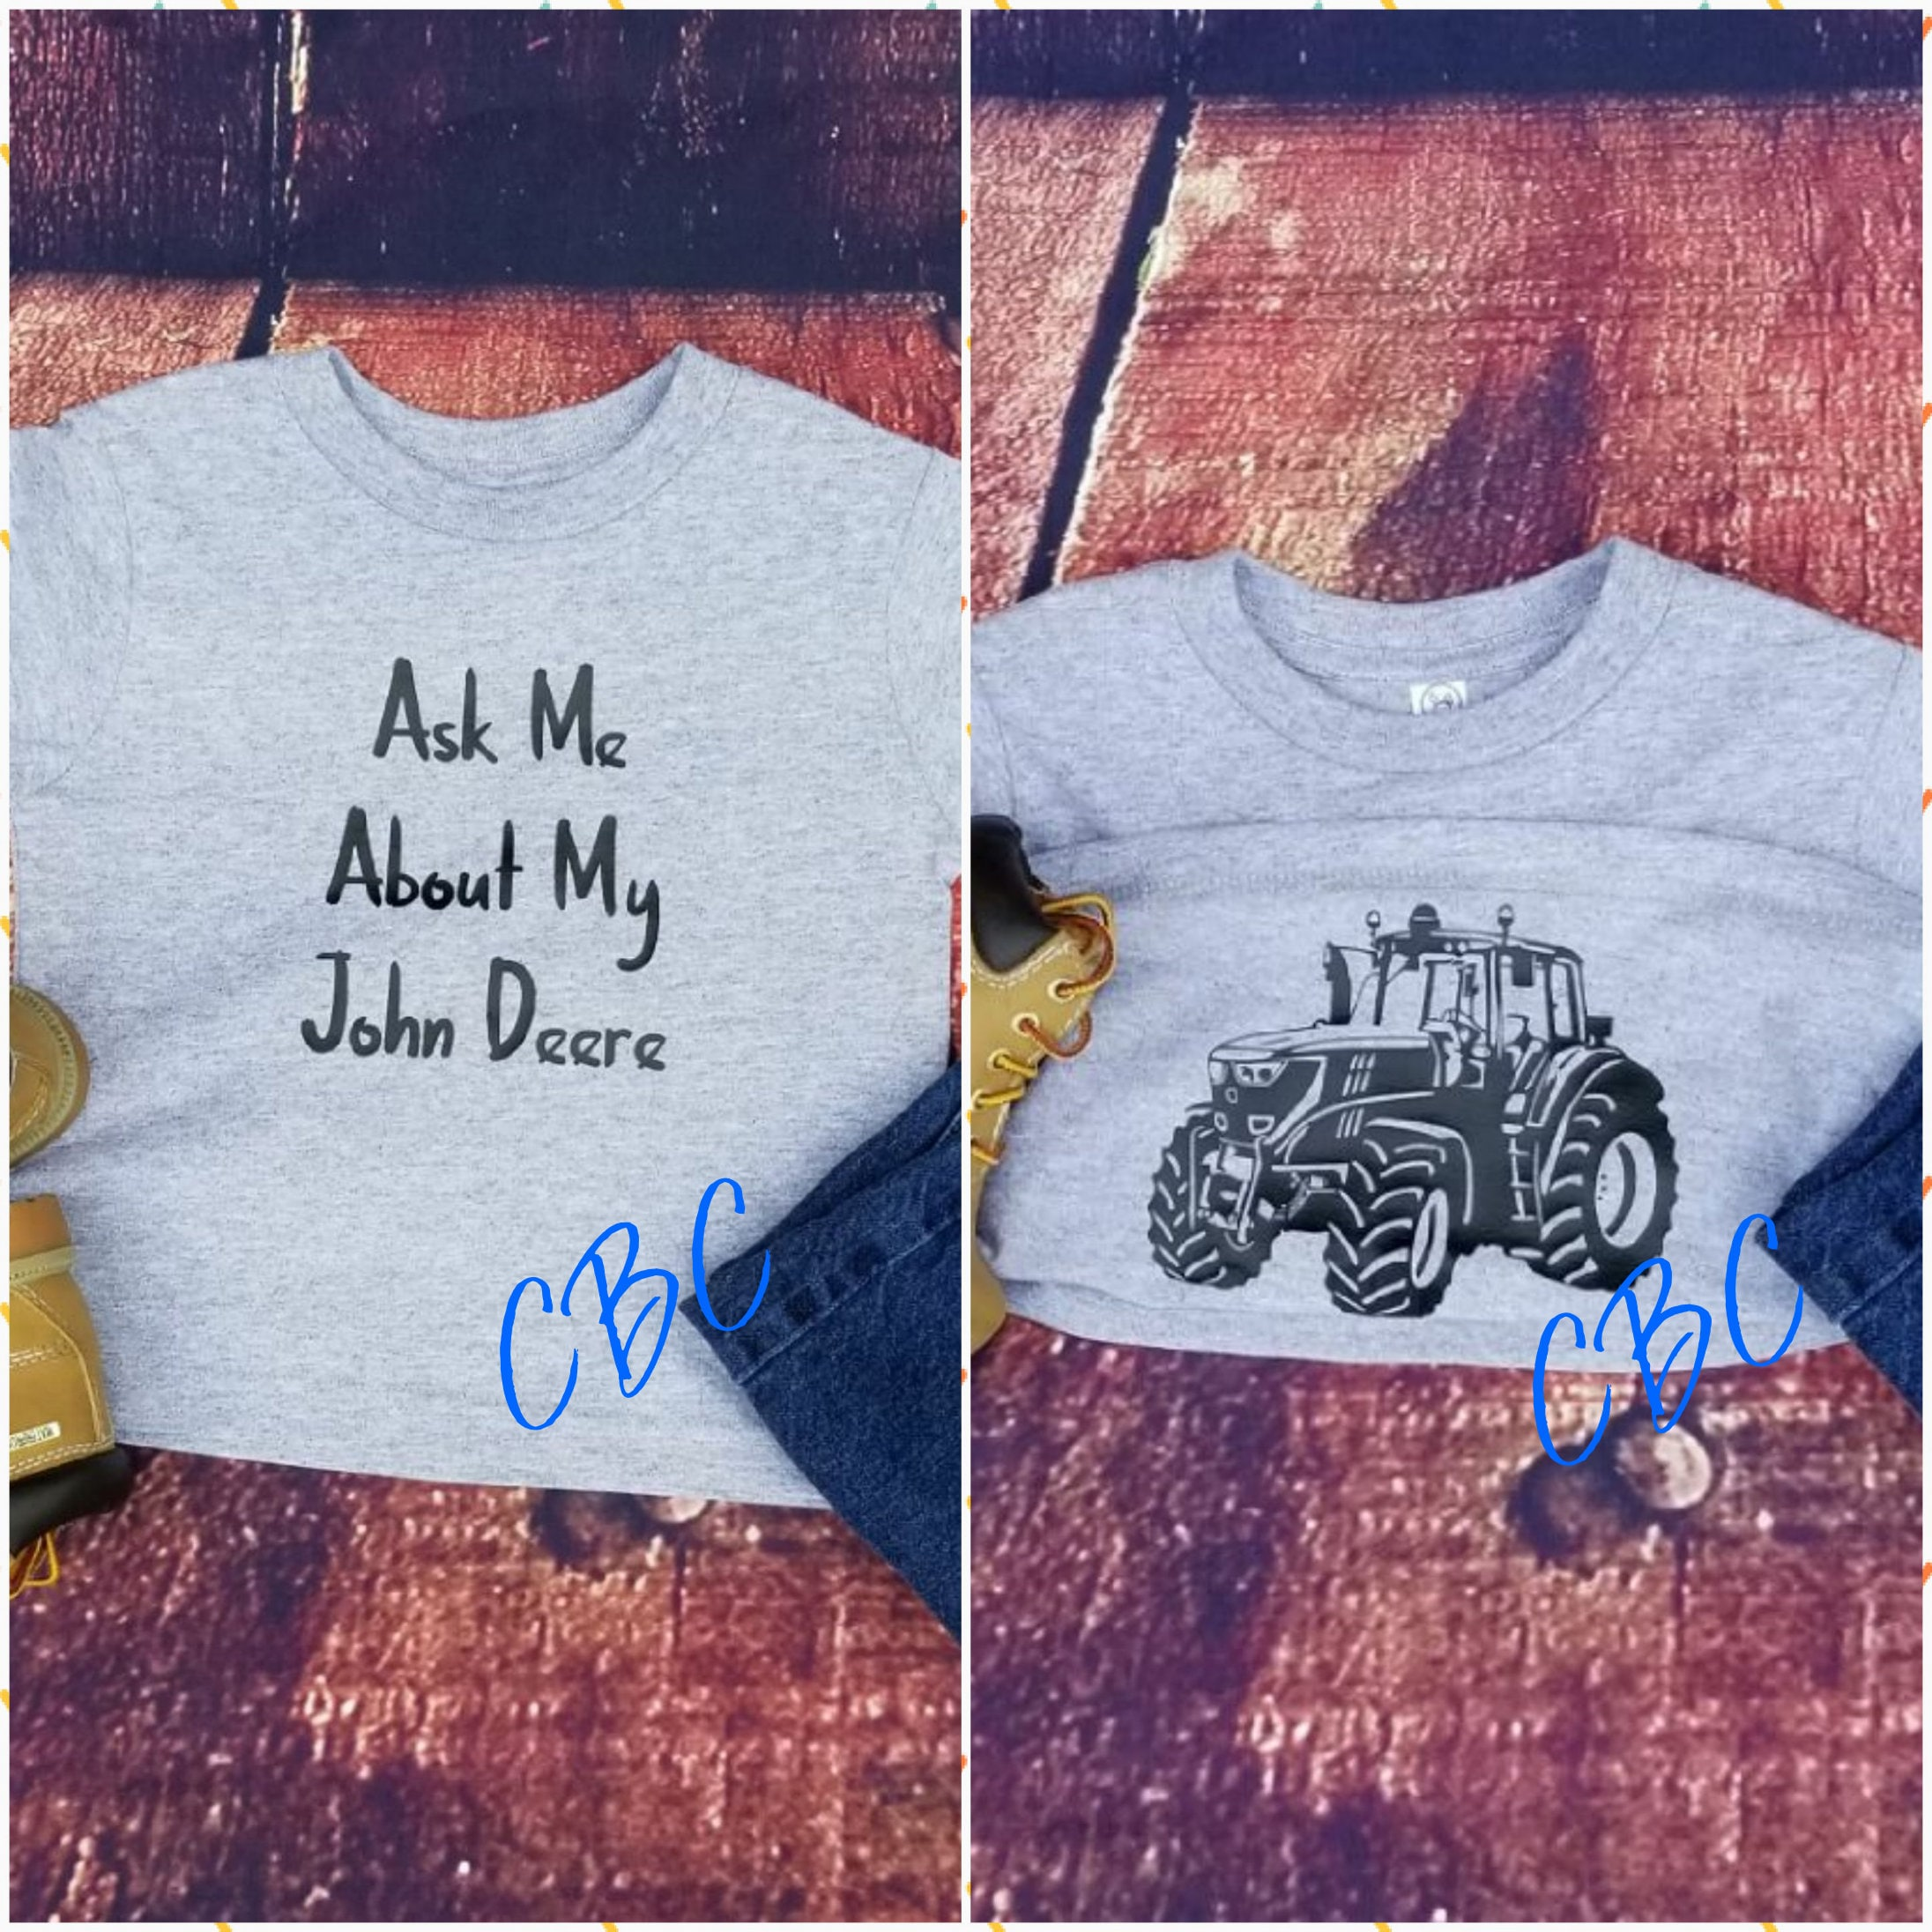 Ask Me About My John Deere 40 Kids Farm Shirt John Deere Tractor